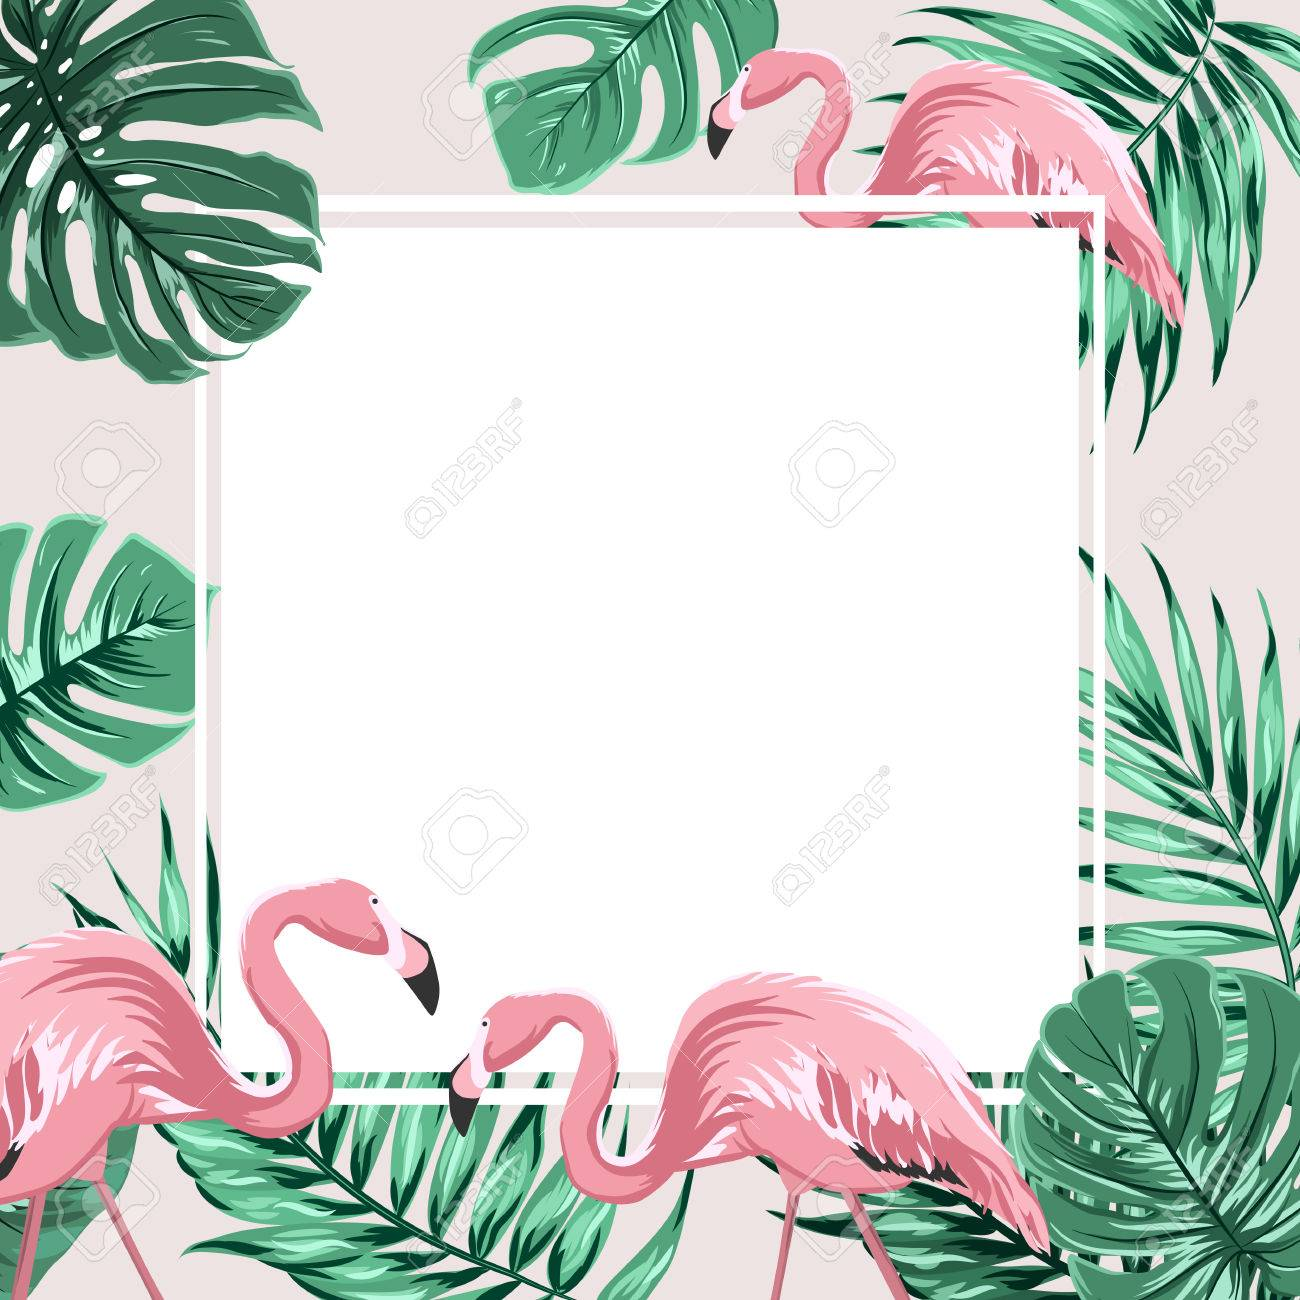 exotic tropical border frame template with bright green jungle